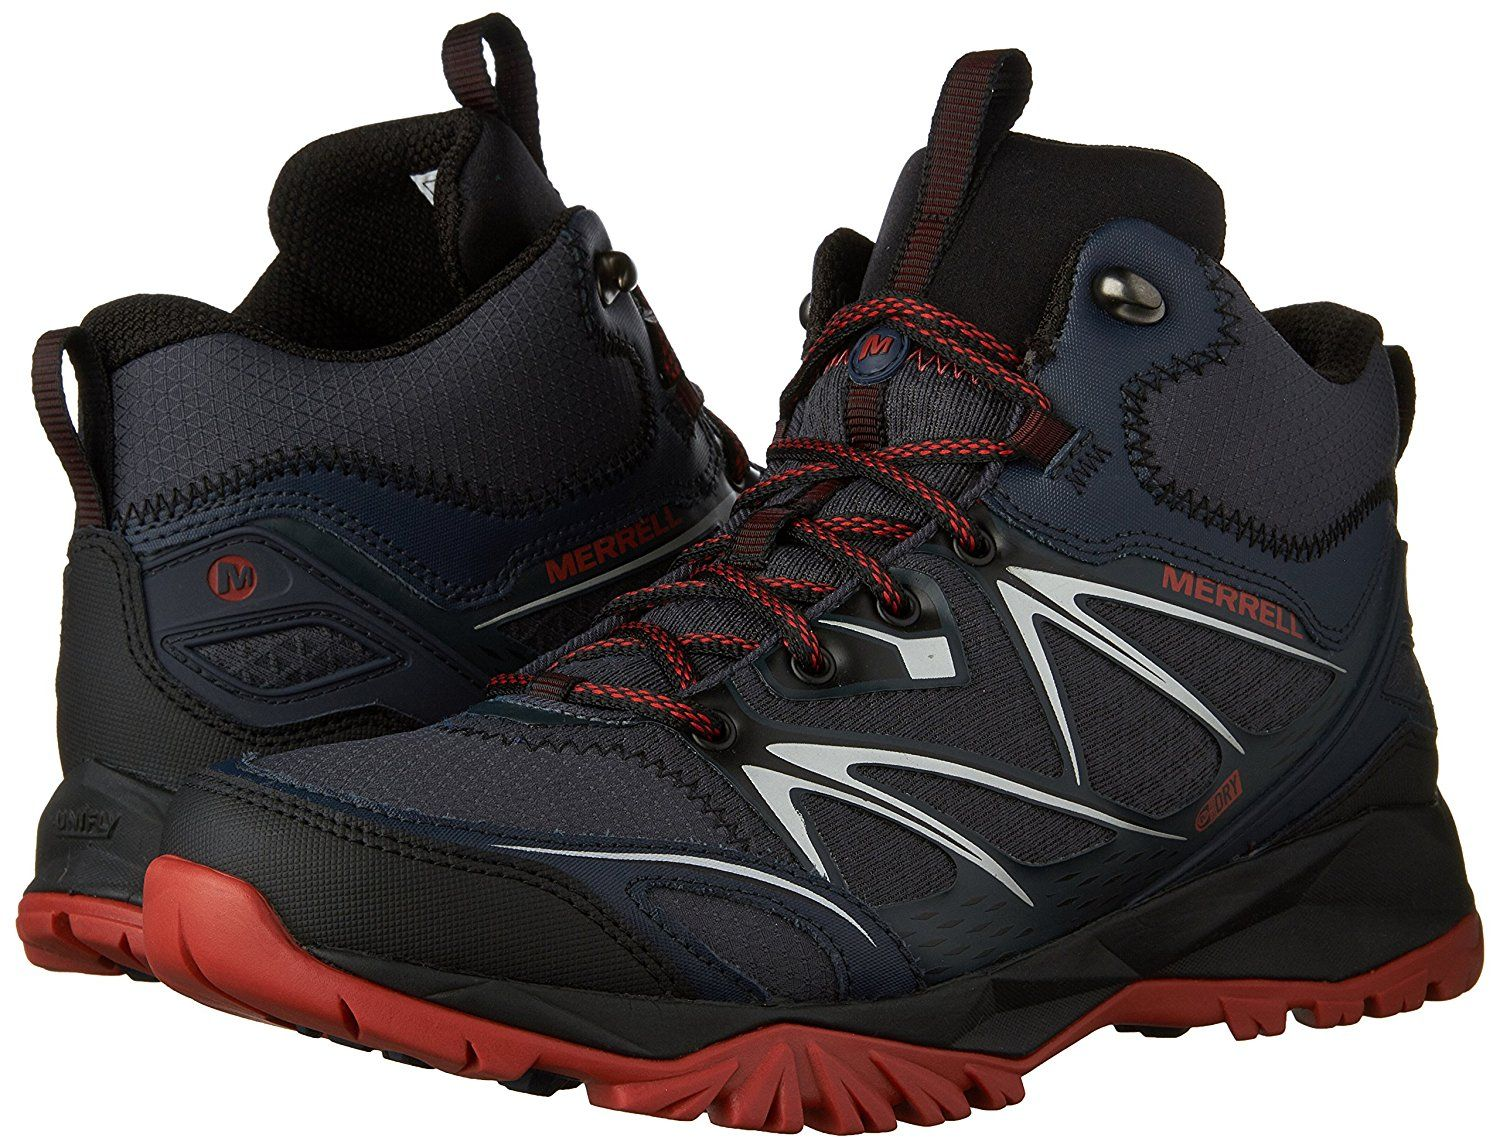 Merrell Men S Capra Bolt Mid Waterproof Boot Want Additional Info Click On The Image This Is An Affiliate Boots Hiking Boots Waterproof Boots